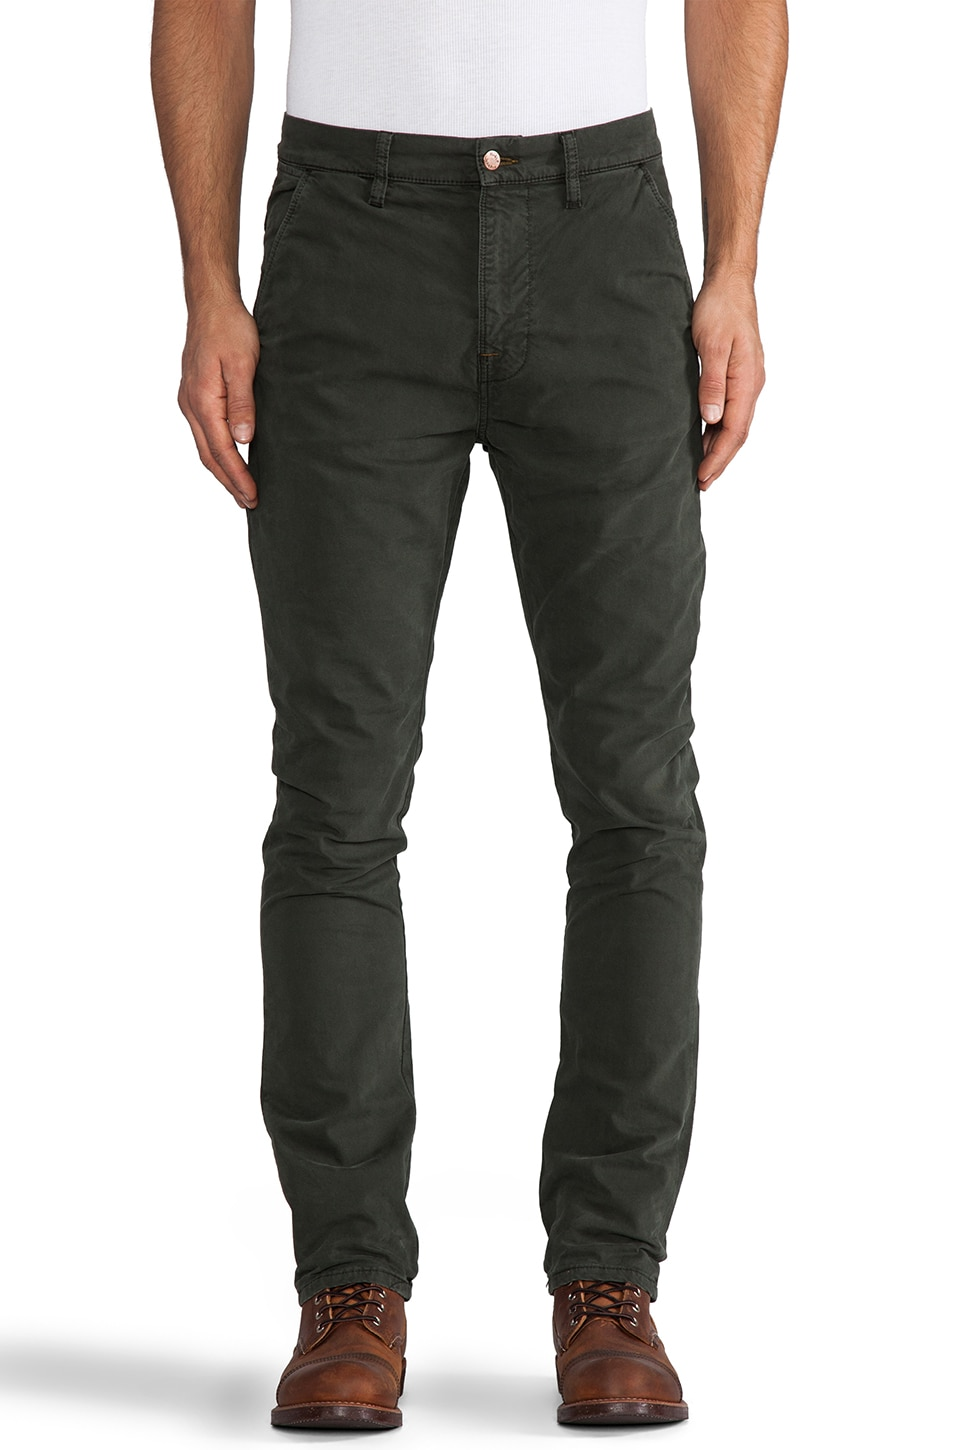 Nudie Jeans Khaki Slim in Org. Forest Night